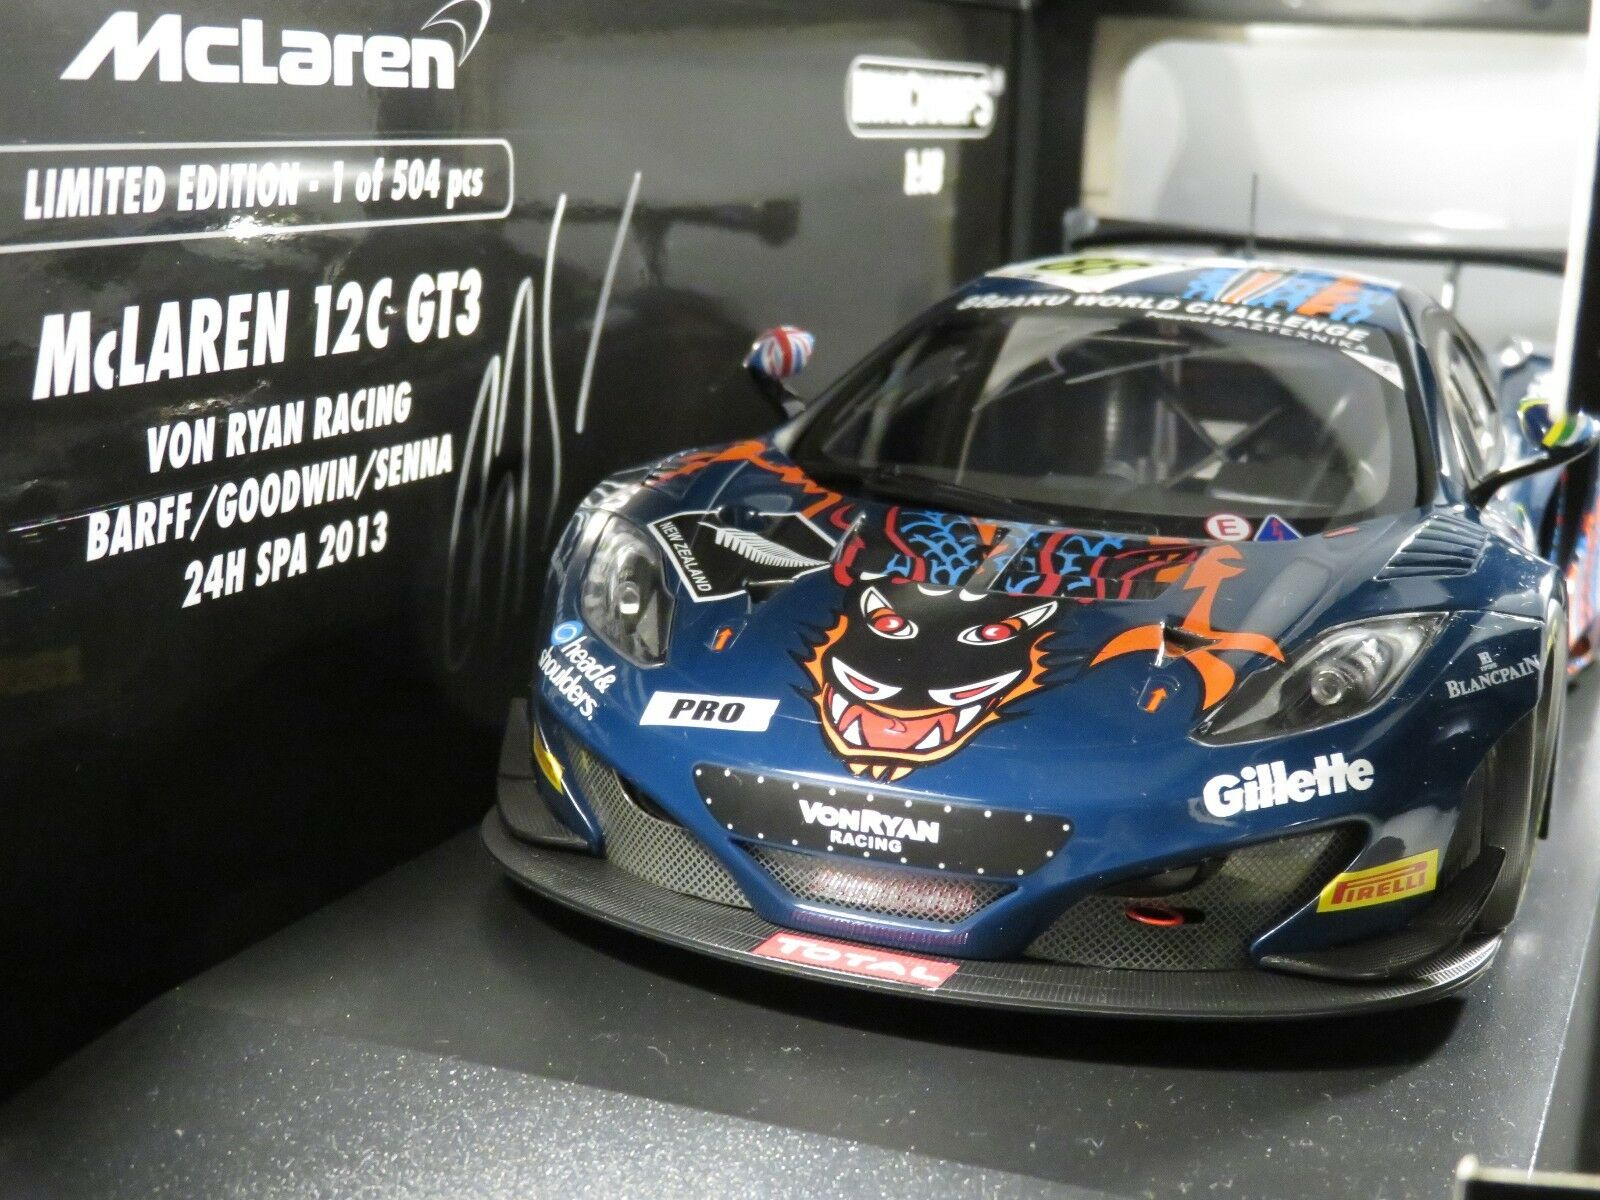 MCLAREN 12C GT3 VON RYAN RACING SPA 2013 signed Bruno SENNA MINICHAMPS 1 18